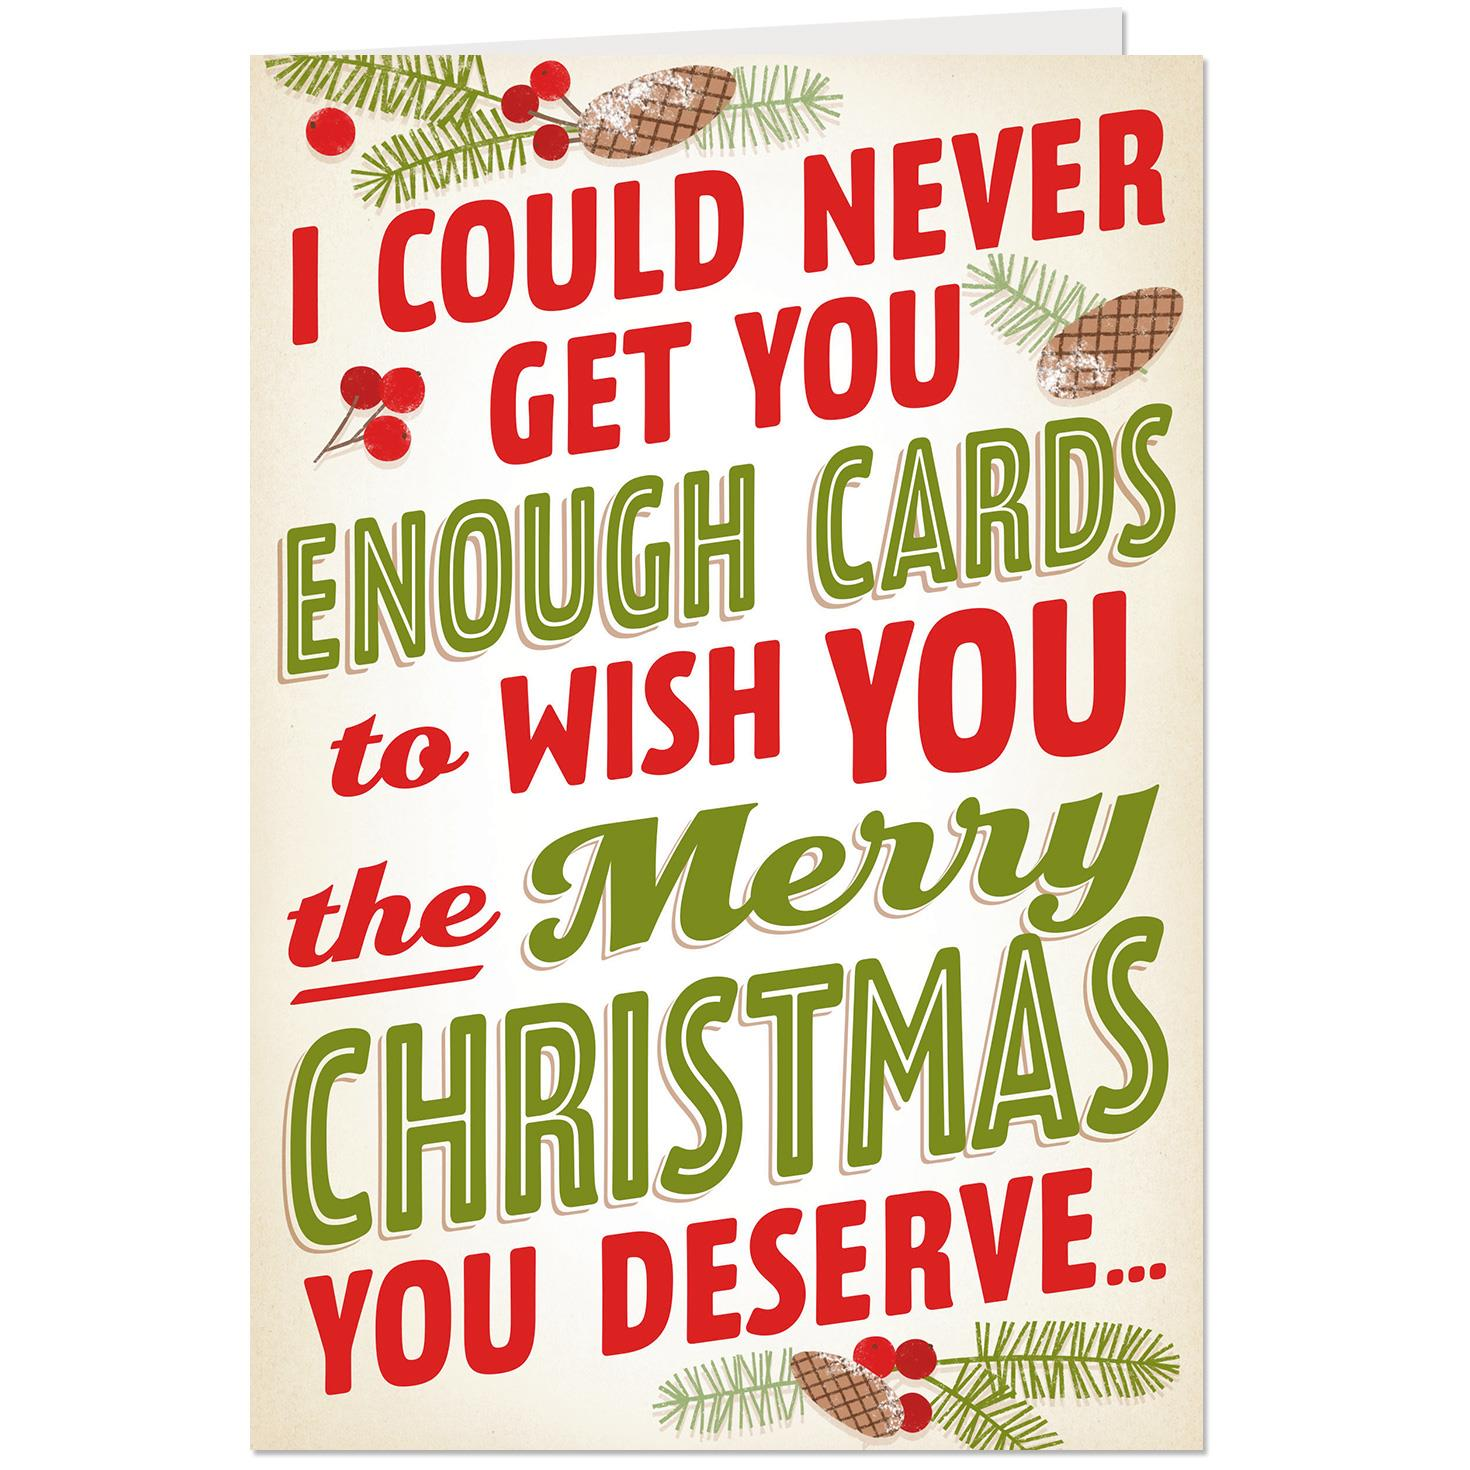 All the Cards You Deserve Funny Christmas Card - Greeting Cards - Hallmark